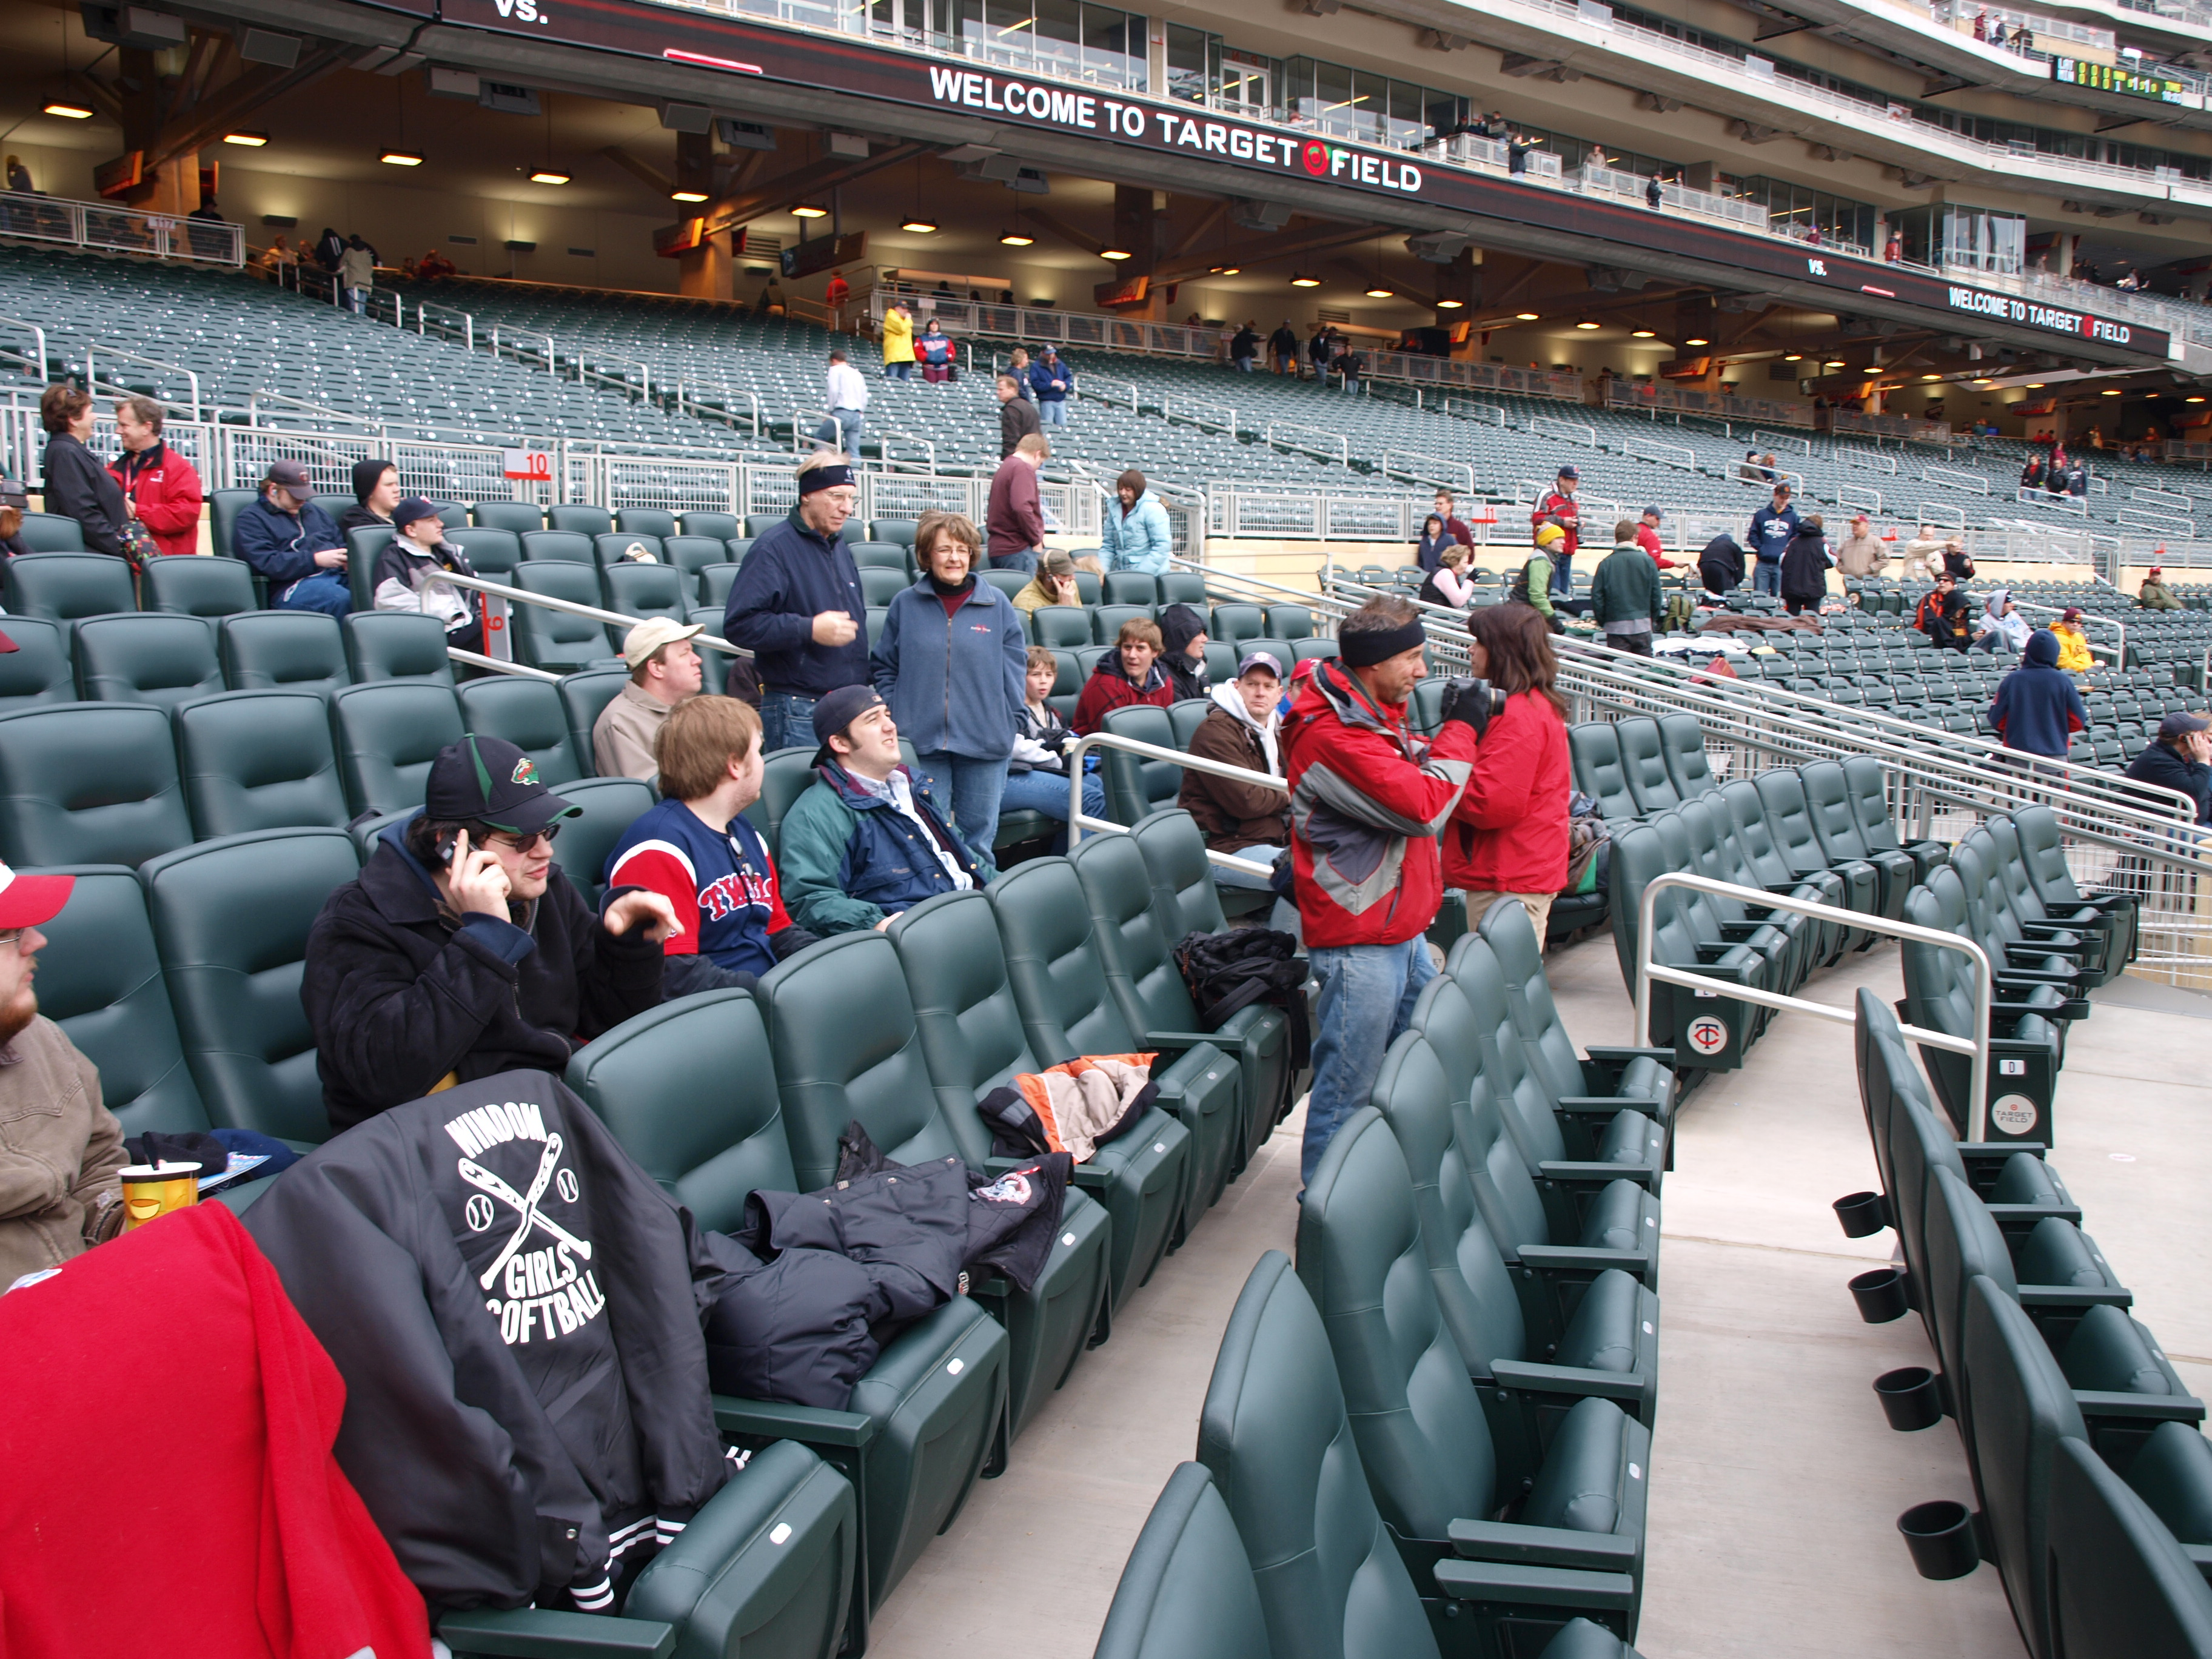 bc place club seats review